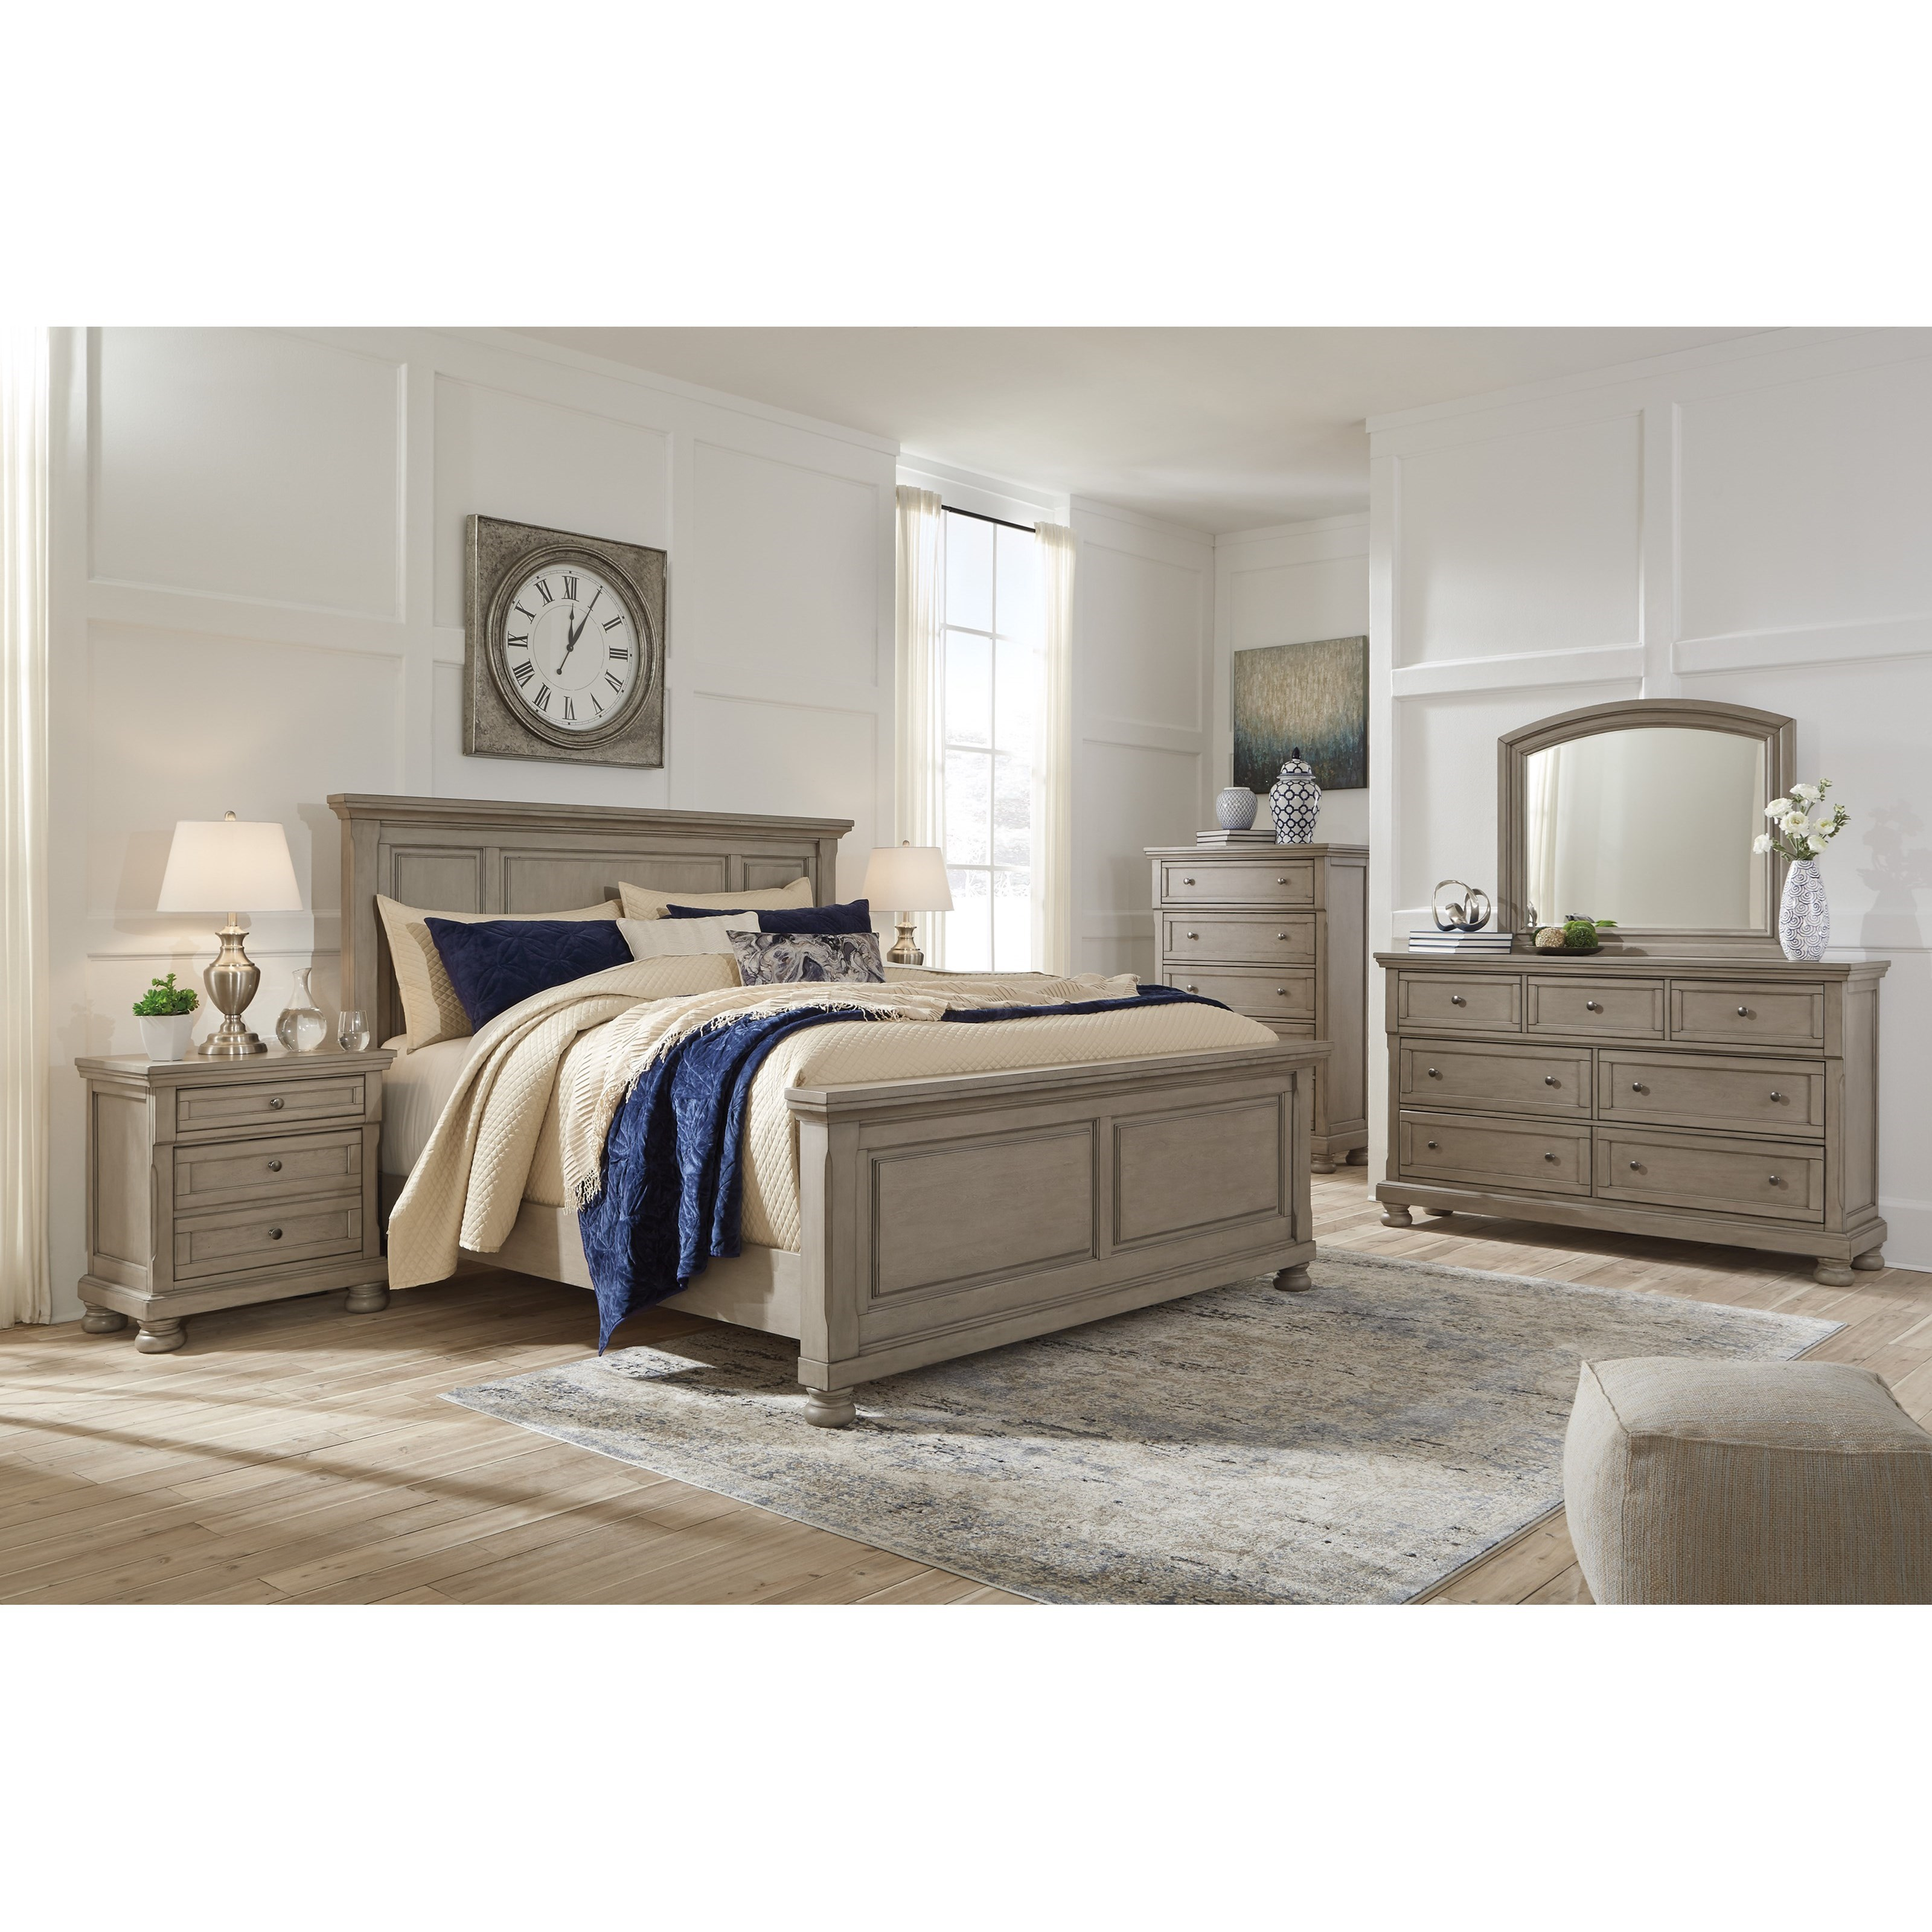 Lettner Queen Bedroom Group by Signature Design by Ashley at Catalog Outlet